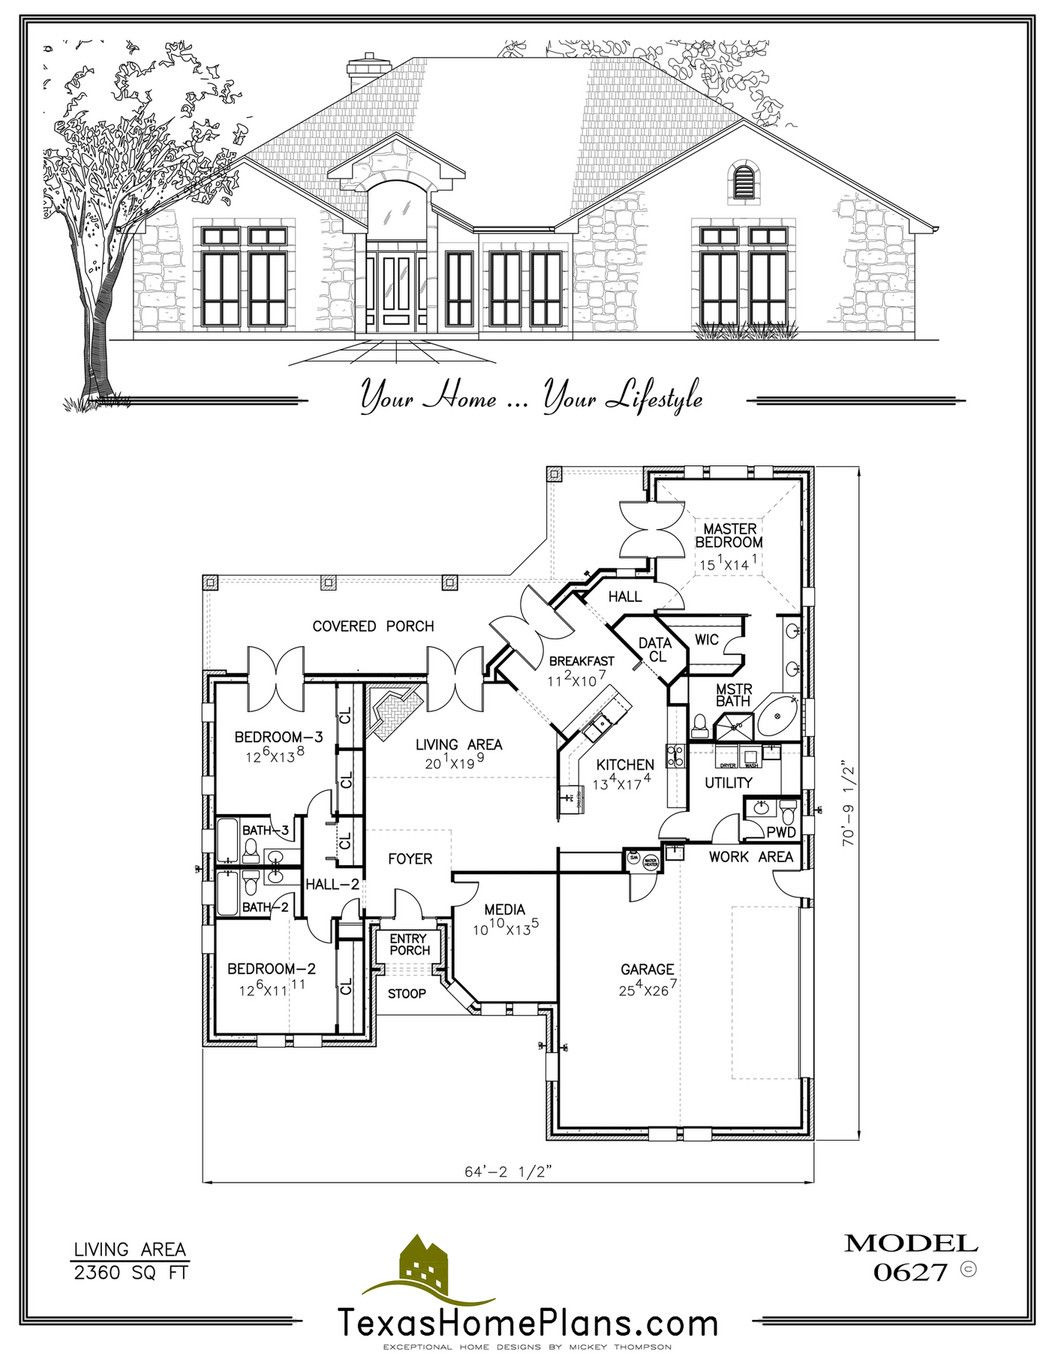 House Plans for Texas Awesome Texas Home Plans Texas Traditional Homes Page 26 27